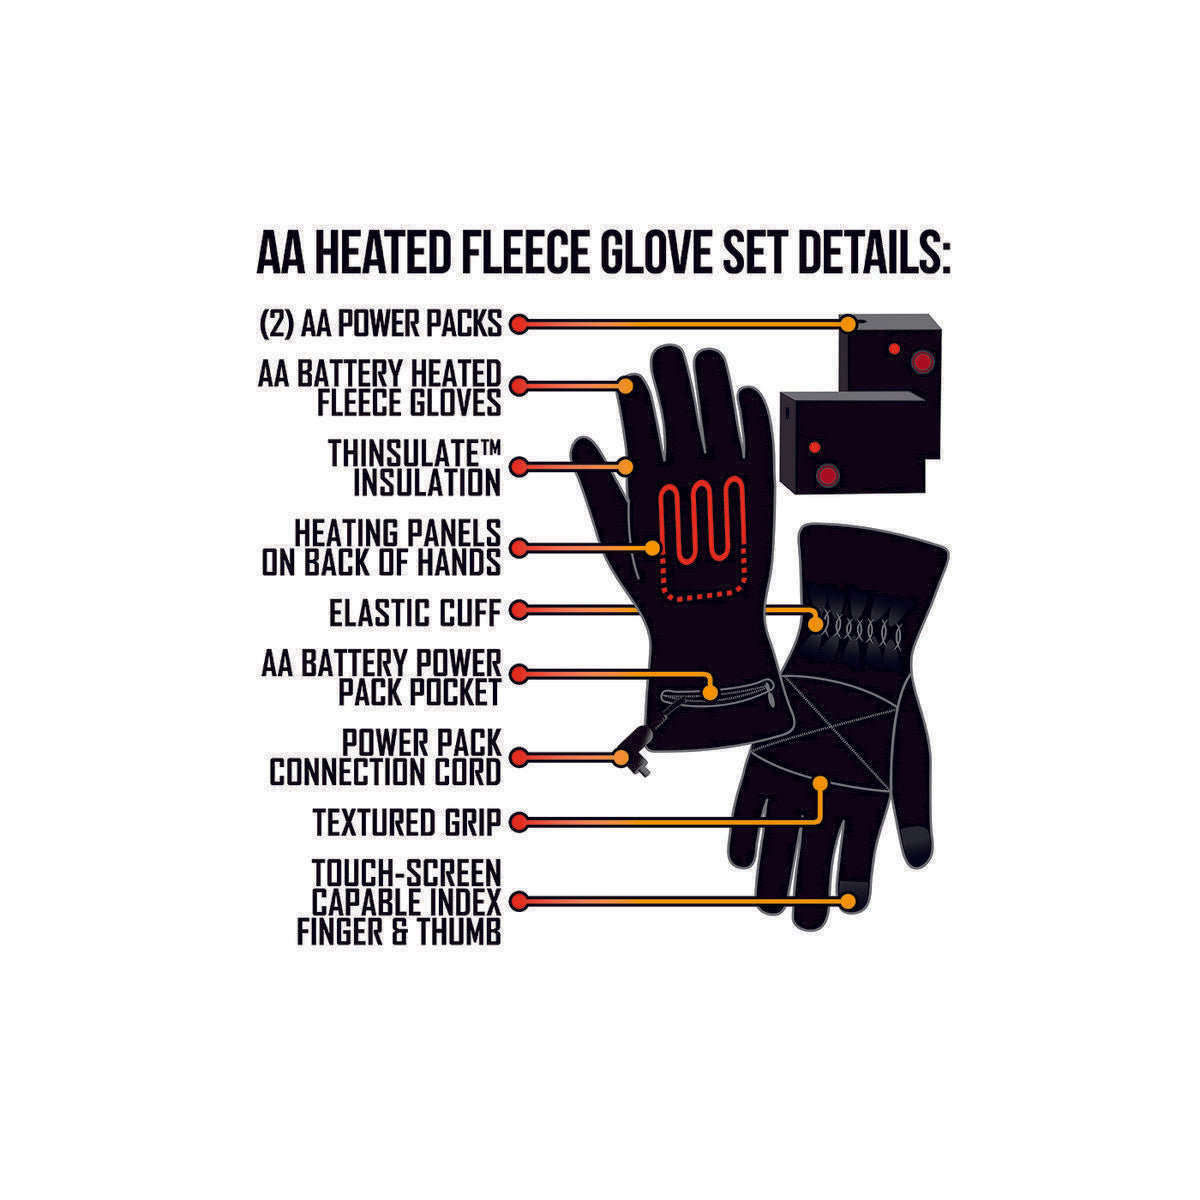 Open Box ActionHeat AA Battery Heated Fleece Gloves - Info